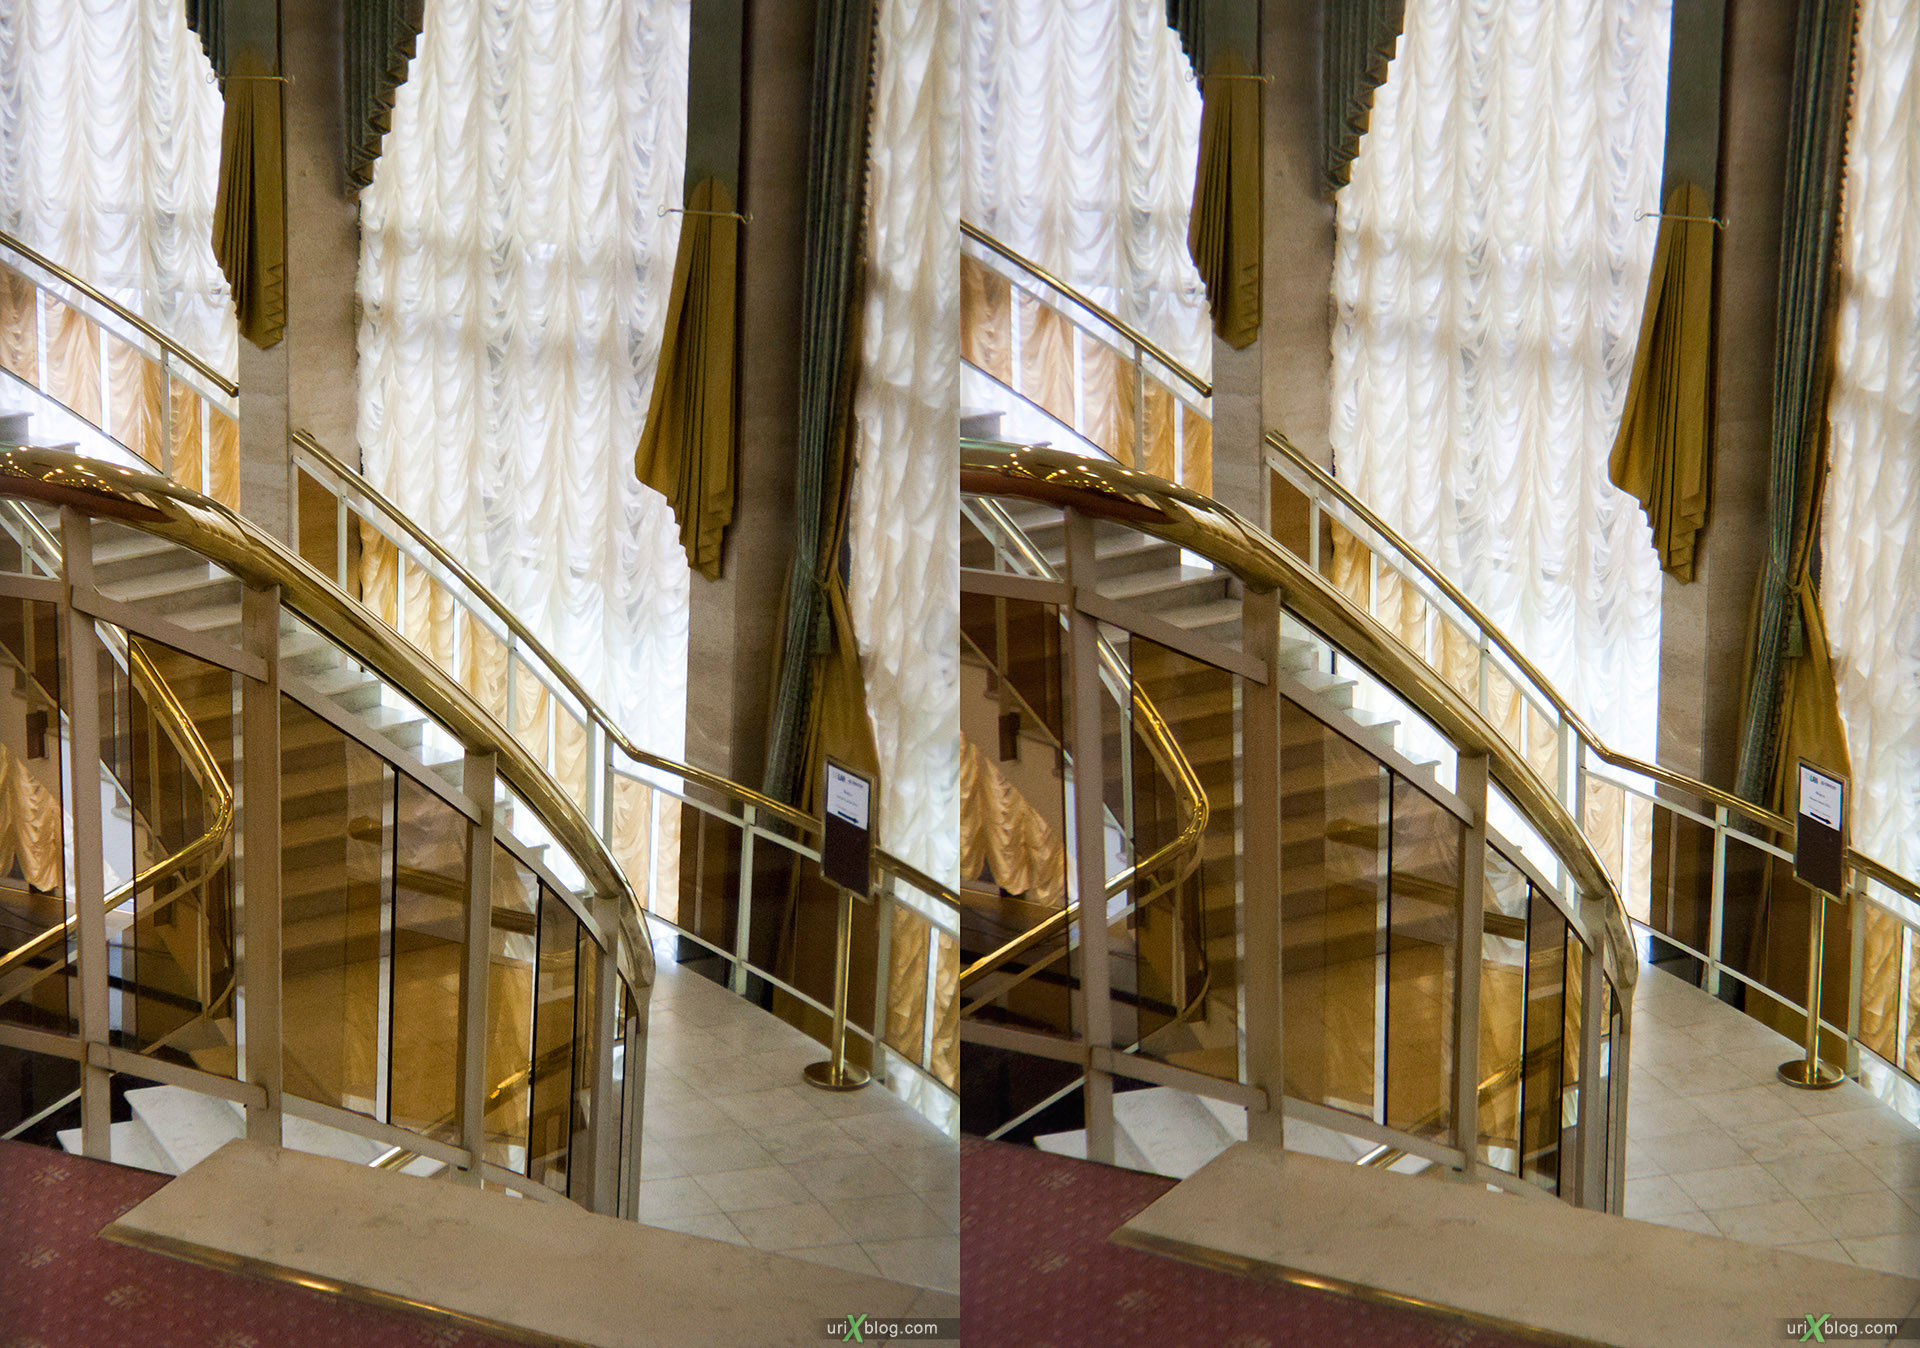 Loreo 3D lens in a cap стерео, стереопара Moscow, Radisson Slavyanskaya Hotel, Москва, Рэдиссон-Славянская, stereo, стерео, cross-eyed, 3D